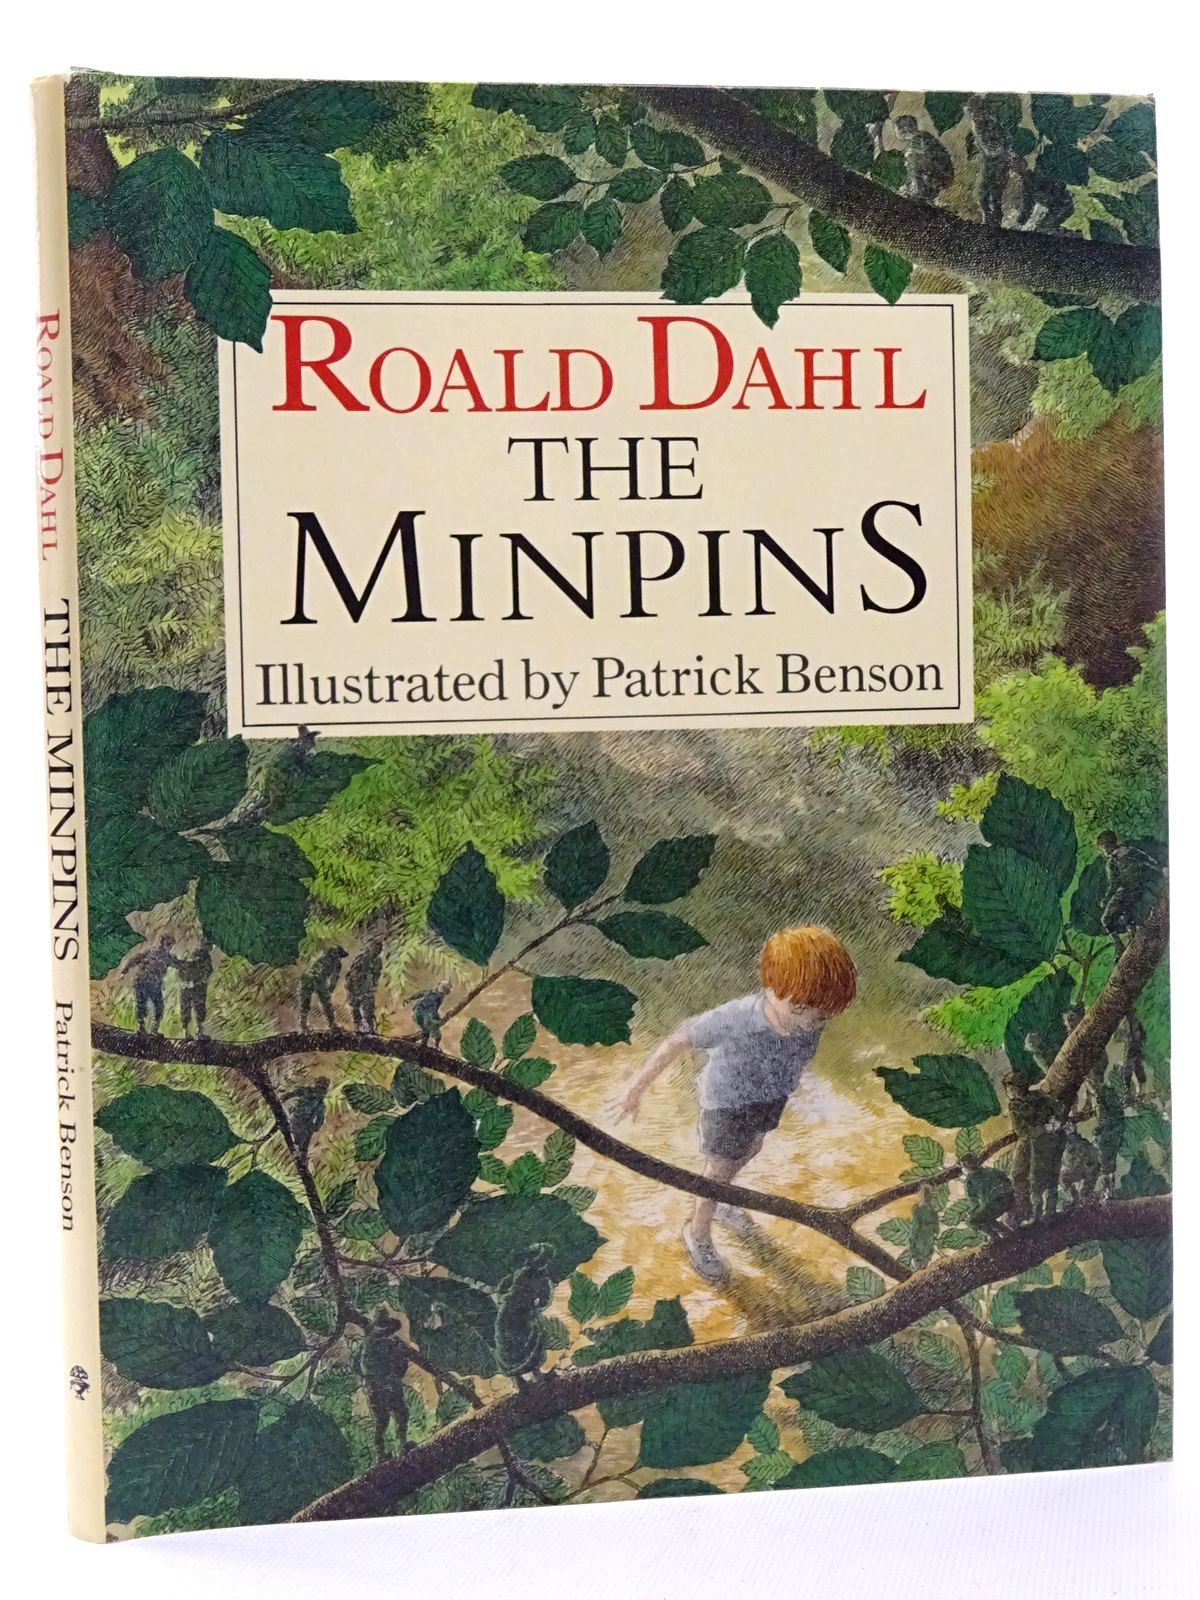 Photo of THE MINPINS written by Dahl, Roald illustrated by Benson, Patrick published by Jonathan Cape (STOCK CODE: 1317276)  for sale by Stella & Rose's Books